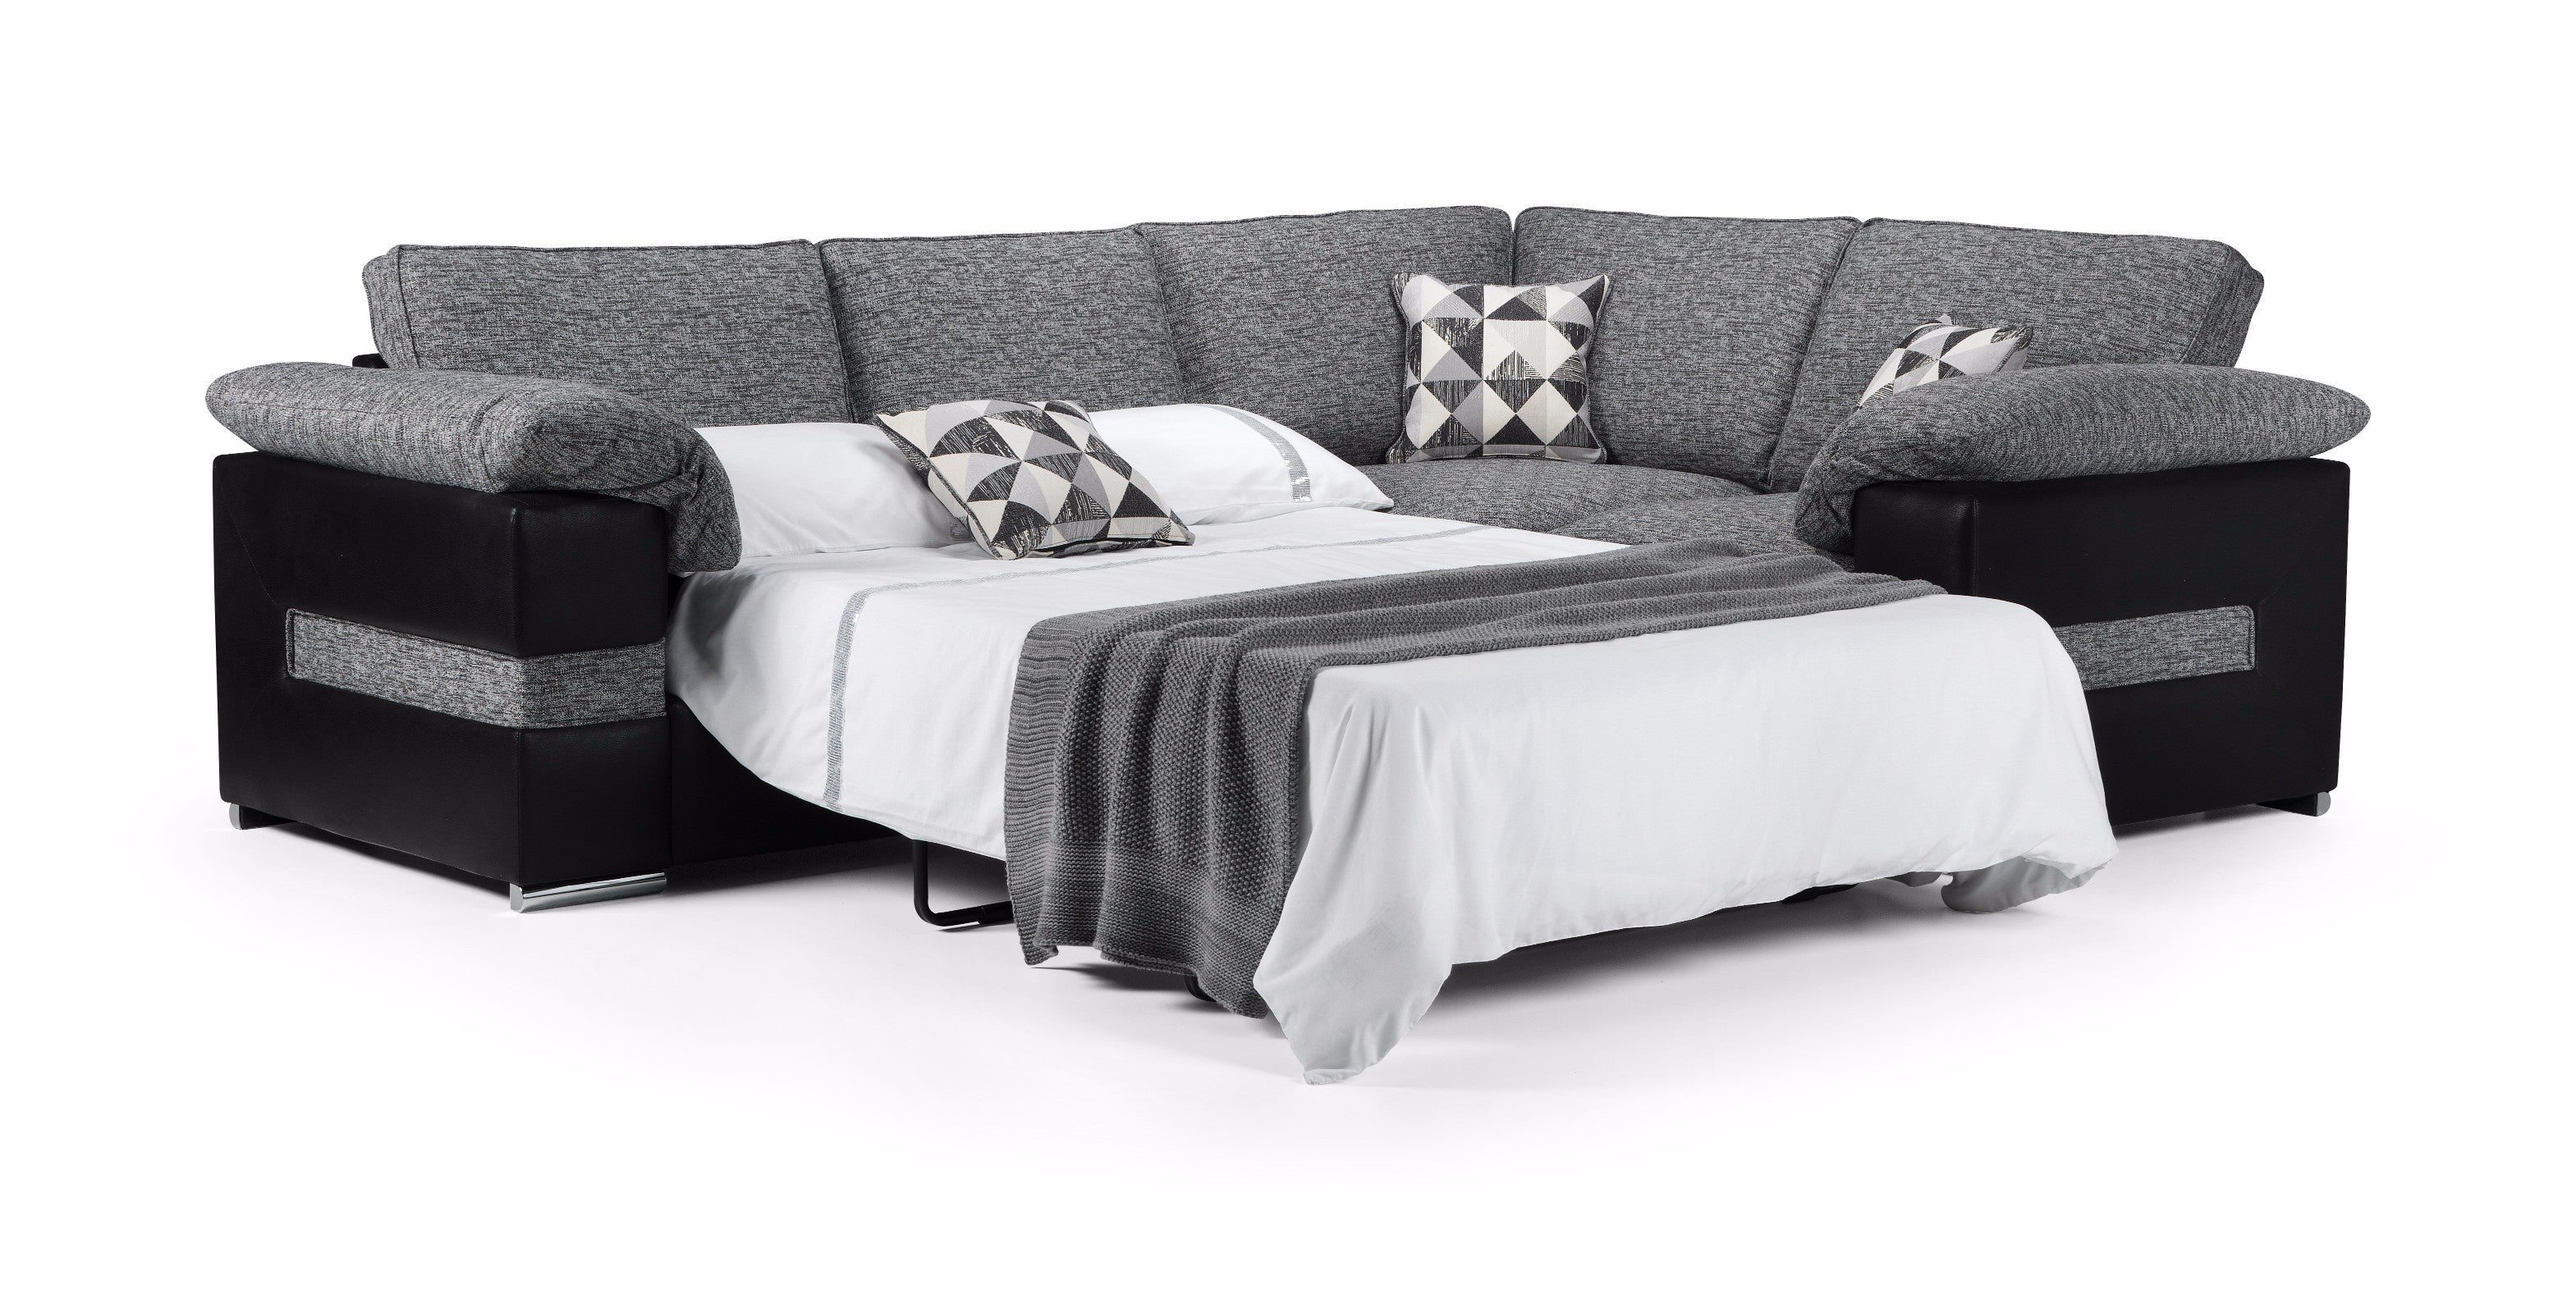 259c766985 Sofa Beds in Sheffield. Sofa Bed in Sheffield